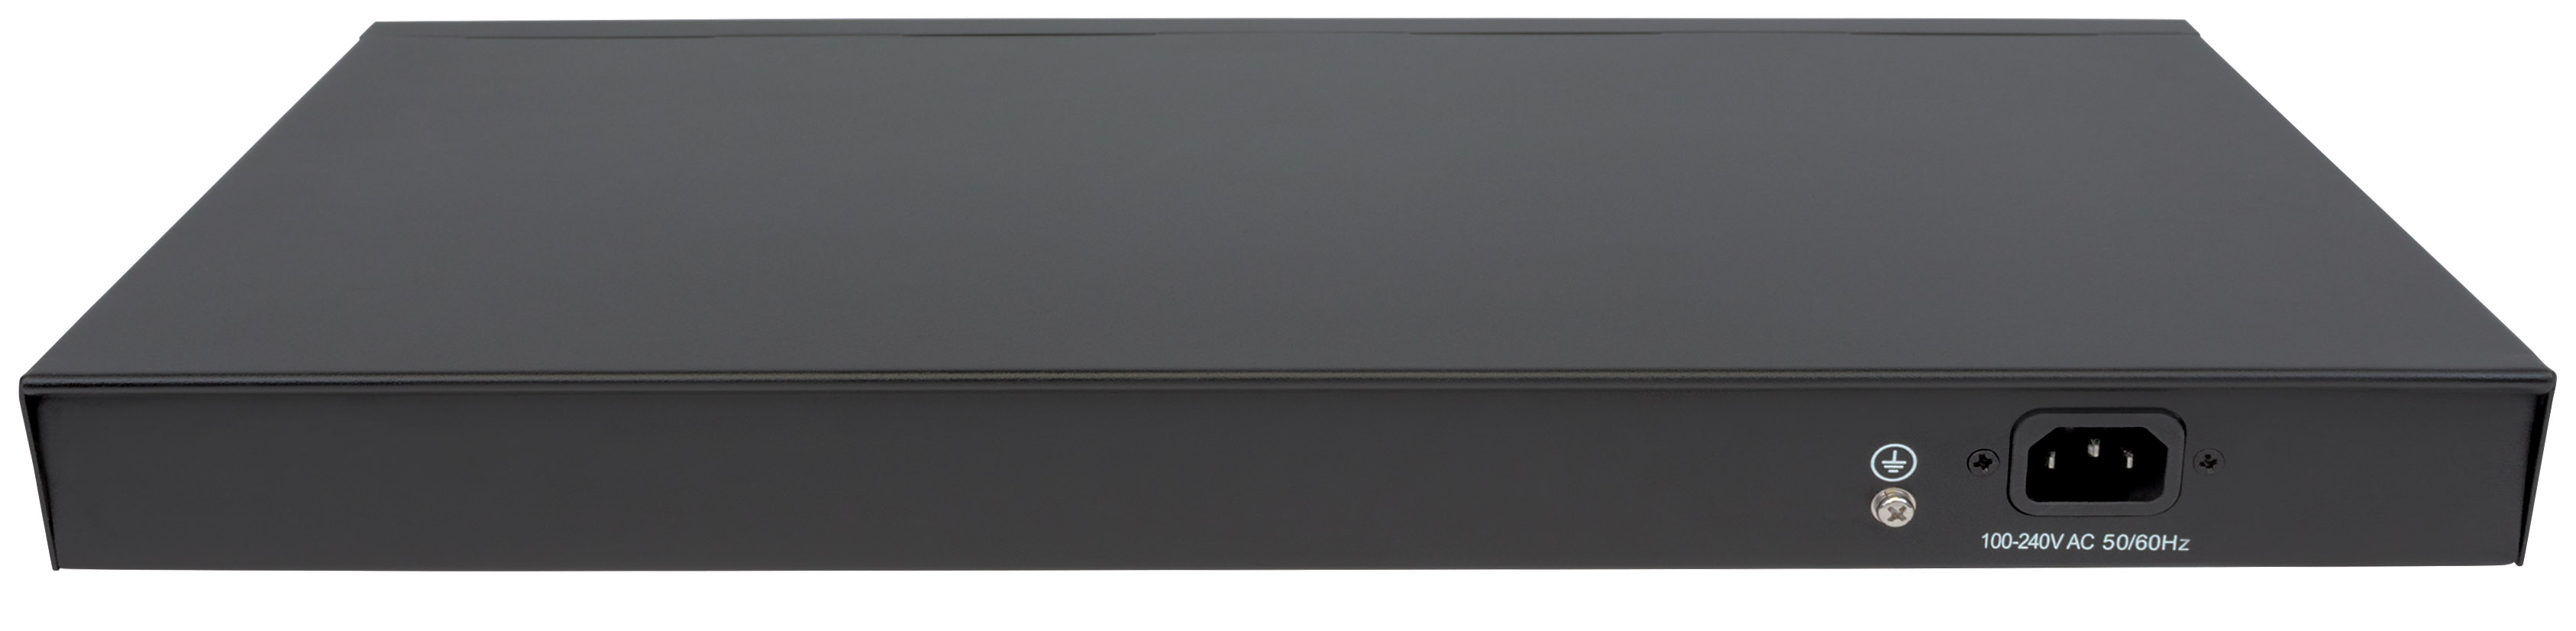 8-Port Gigabit Ethernet Ultra PoE Switch with 4 Uplink Ports and LCD Screen